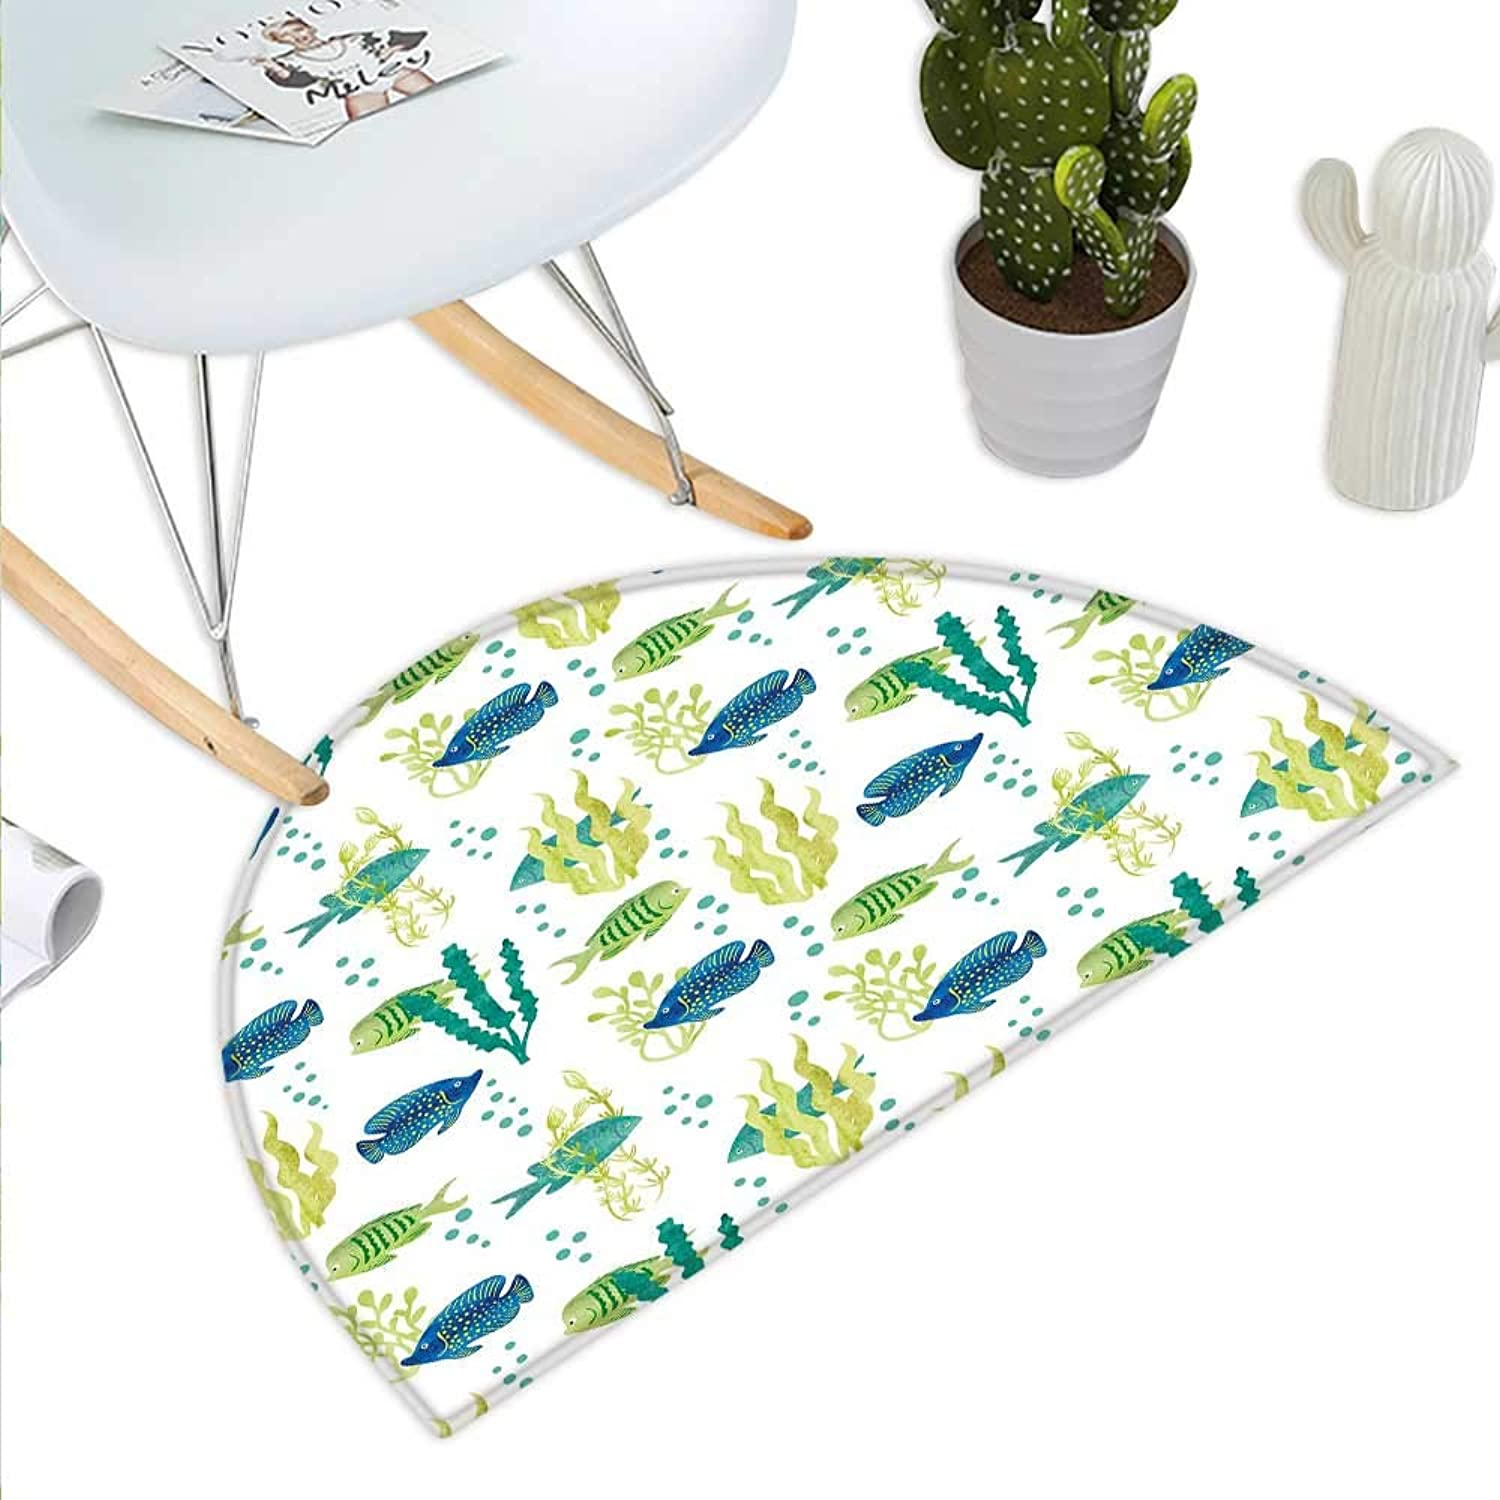 Aquarium Semicircular CushionDifferent Tropical Fish and Seaweeds Exotic Marine Watercolor Artwork Entry Door Mat H 31.5  xD 47.2  Avocado Green Teal bluee